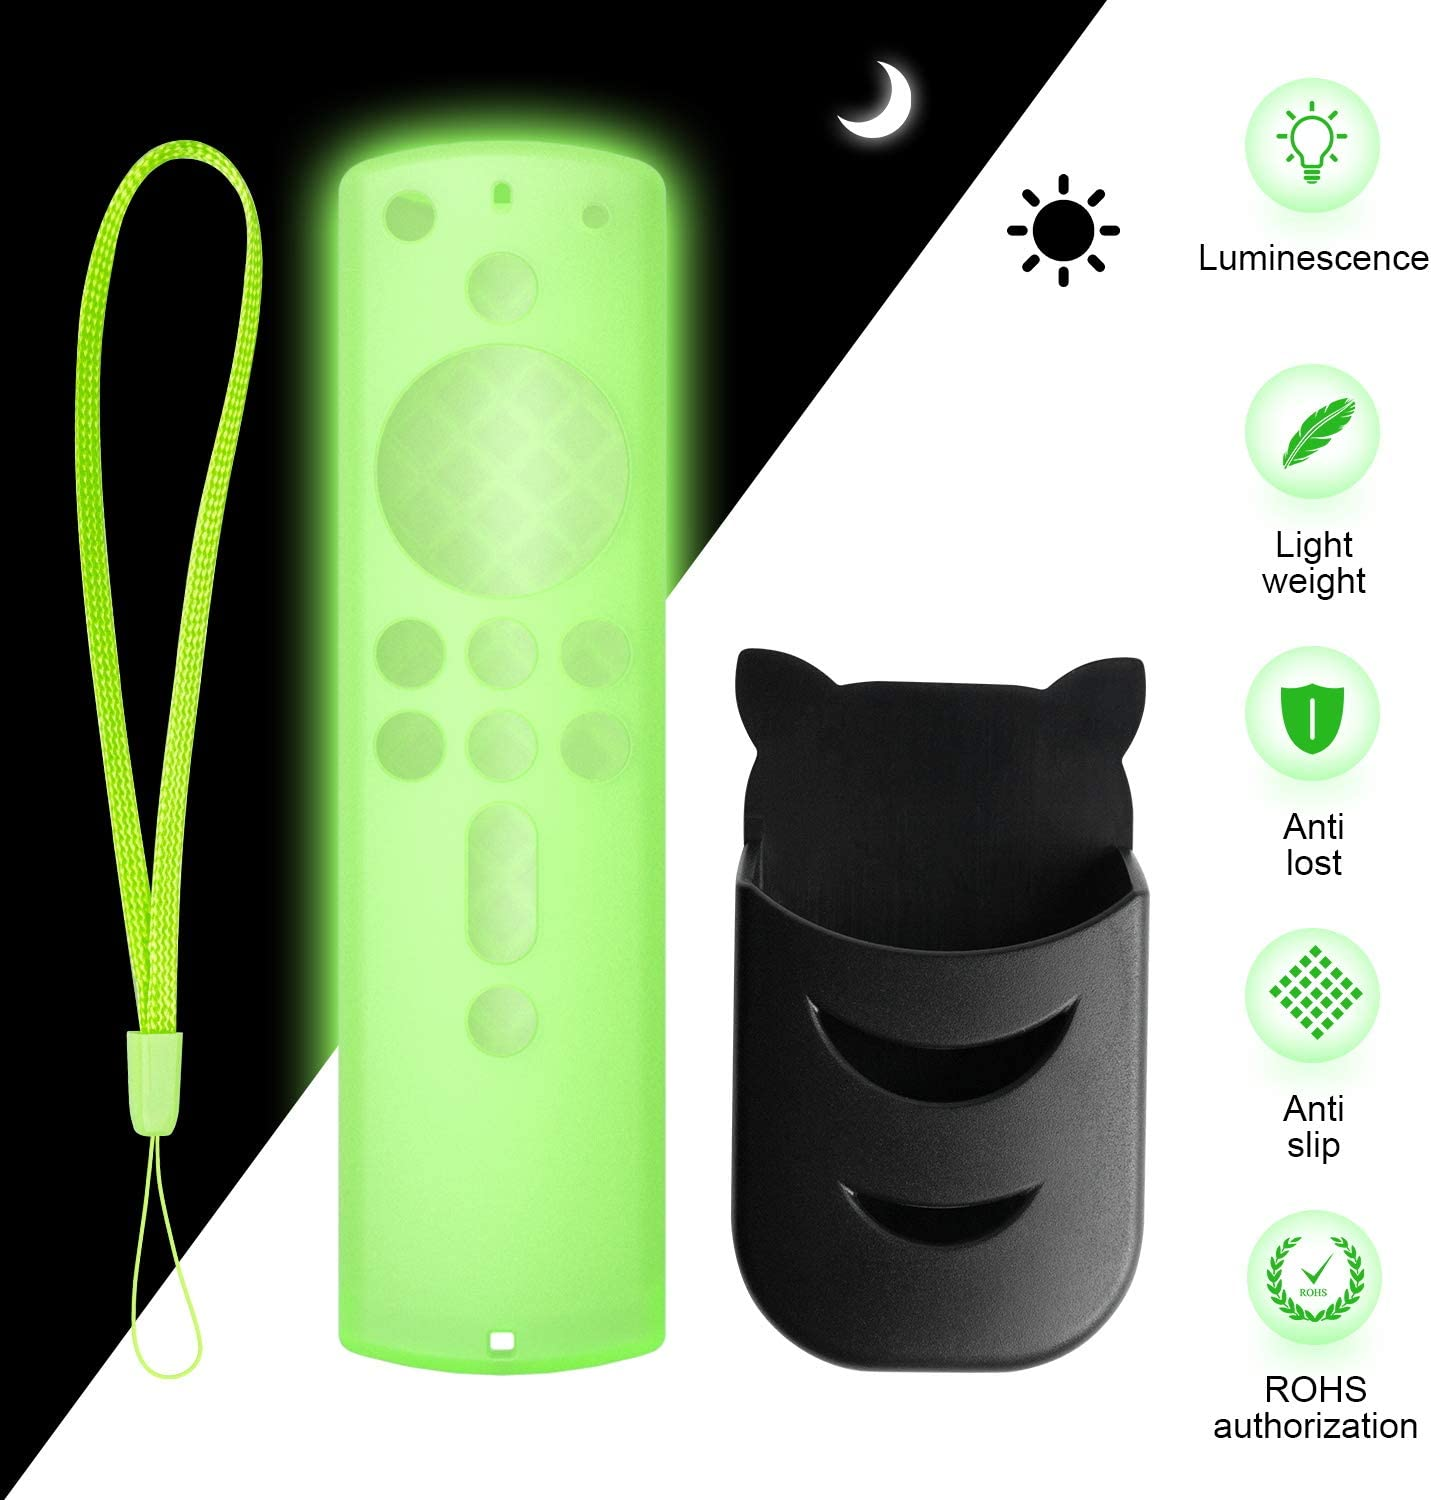 Set Green Glow Remote Cover and Remote Holder, Silicone Remote Cover for 4K Firestick TV Stick, Fire TV Stick (2nd Gen), Fire tv (3rd Gen) Remote Case Light weight Anti Slip and Wrist straps